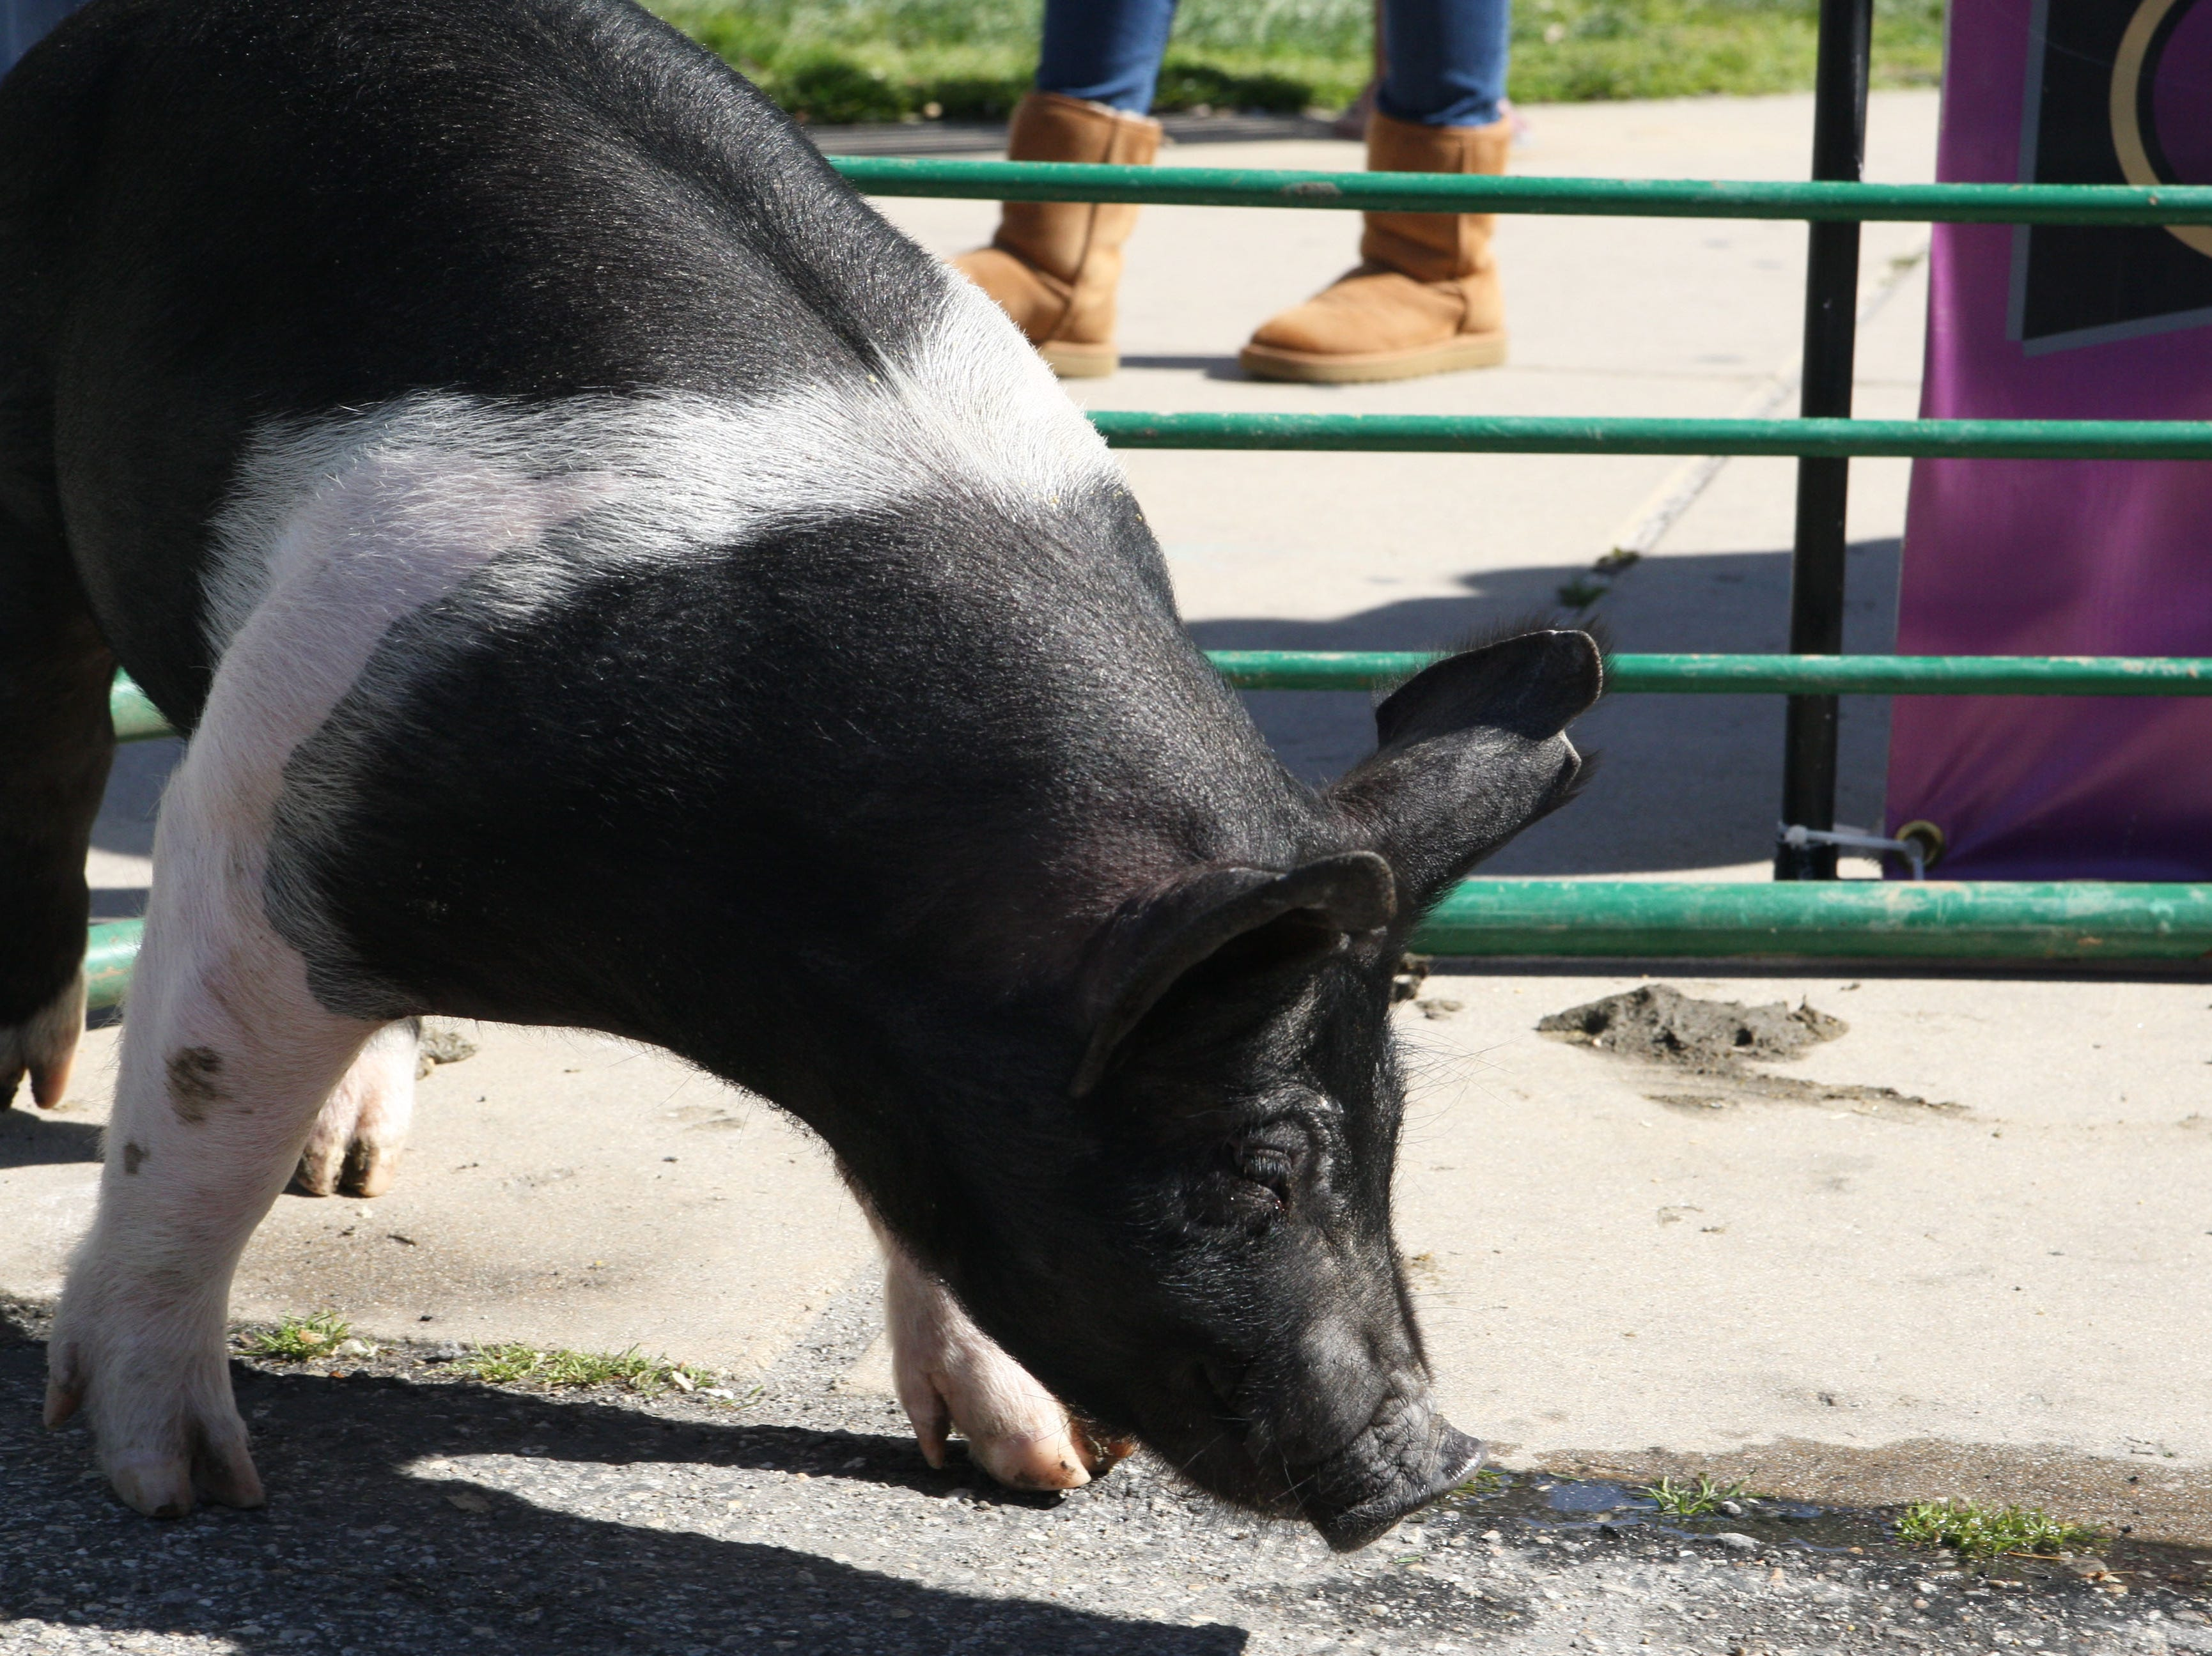 Otis the pig noses the cement.